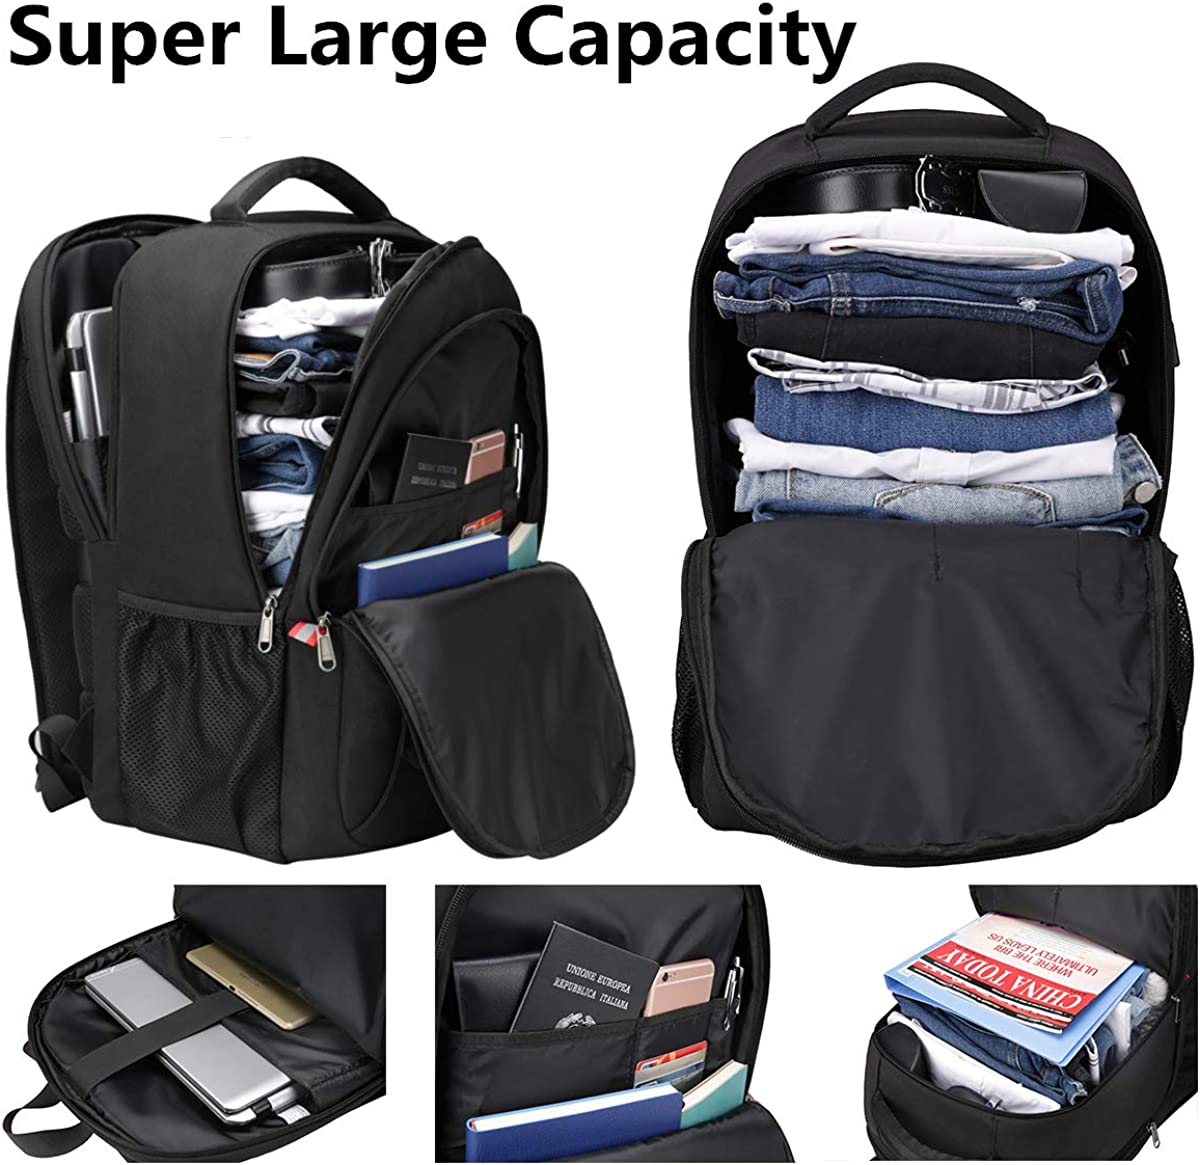 TSA Friendly Computer Backpack Anti Theft Carry on Bookbag 17 inch Laptop Backpack Water Resistant School Backpack Business Laptop Bag 17.3 inch Travel Backpack with USB Charging Port